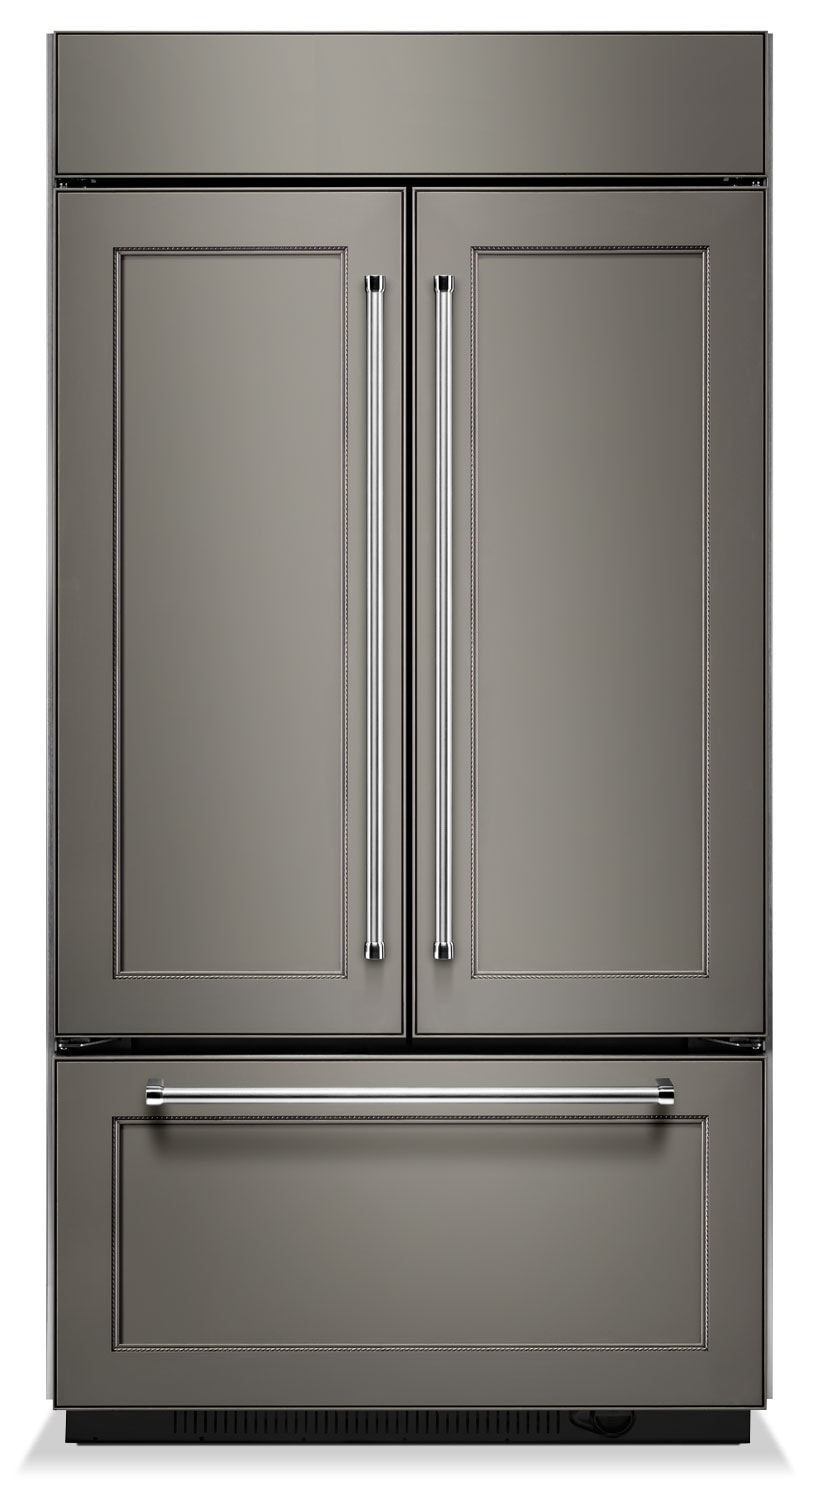 Refrigerators and Freezers - KitchenAid Custom Panel-Ready Refrigerator (24.2 Cu. Ft.) KBFN402EPA